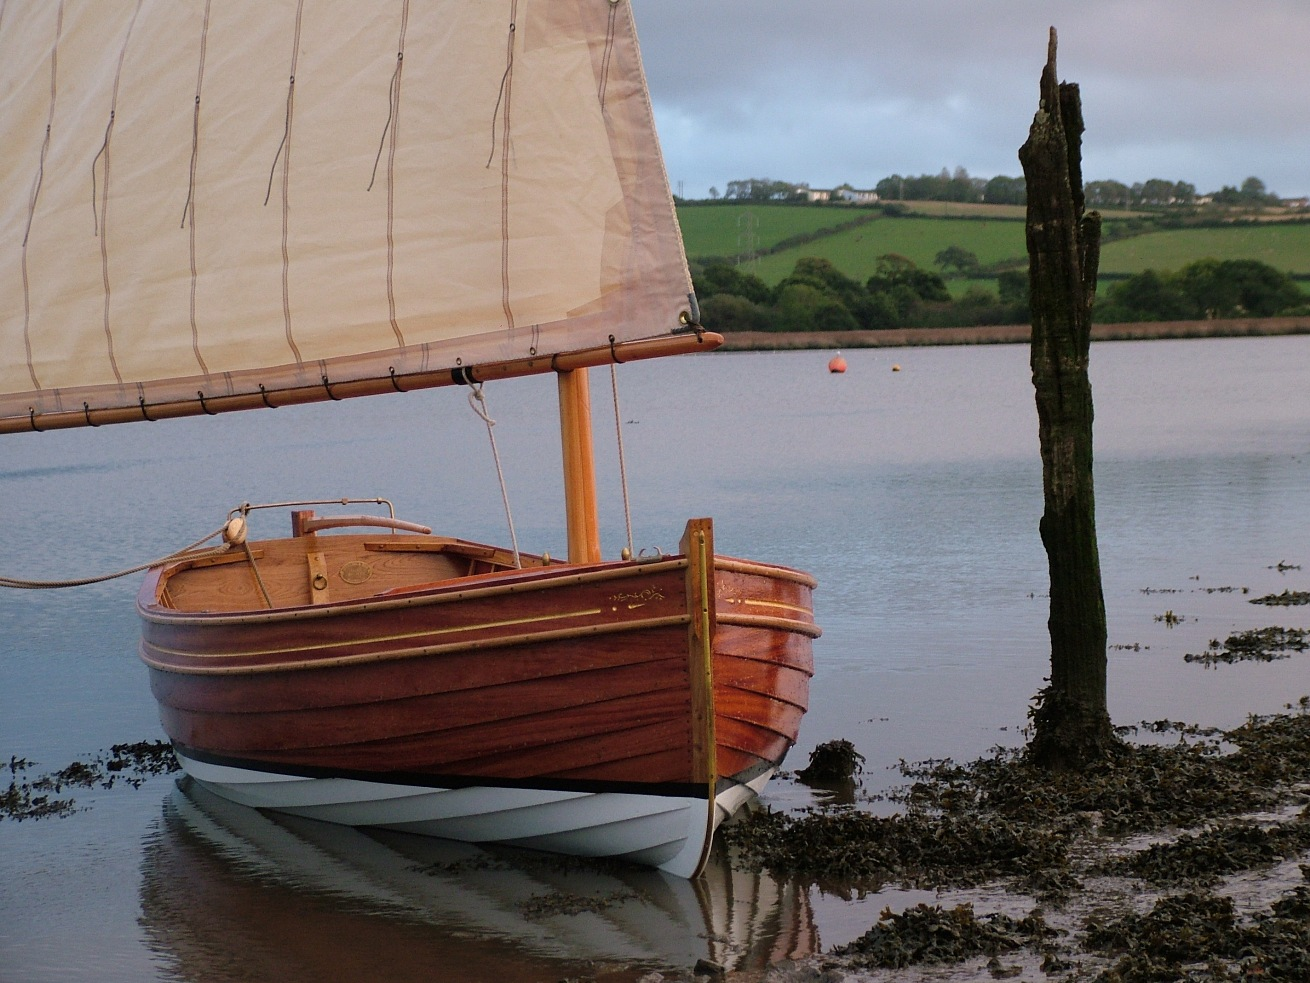 Sailing Dinghy Plans submited images.